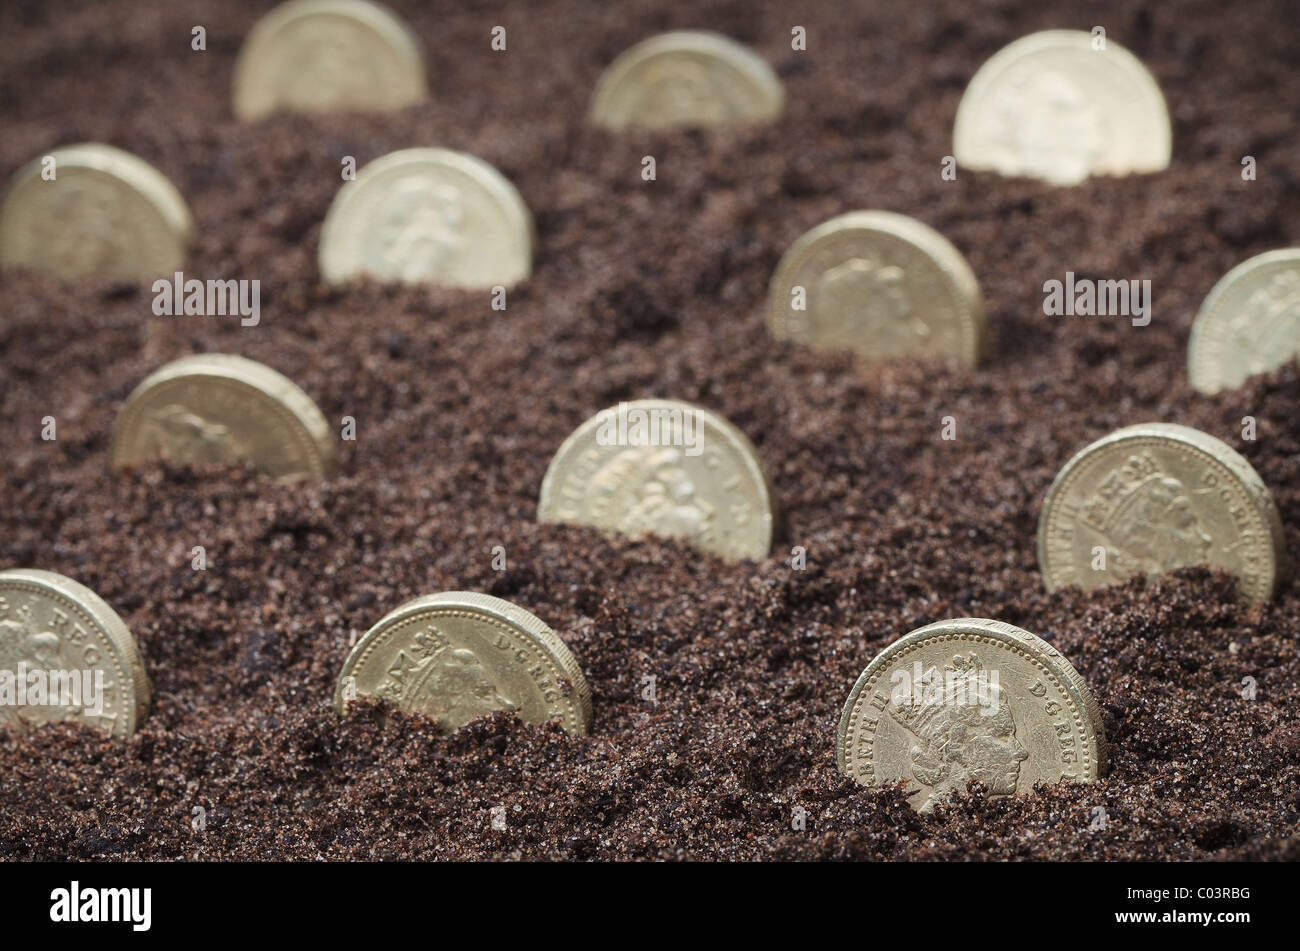 British pound coins 'growing' in soil - Stock Image